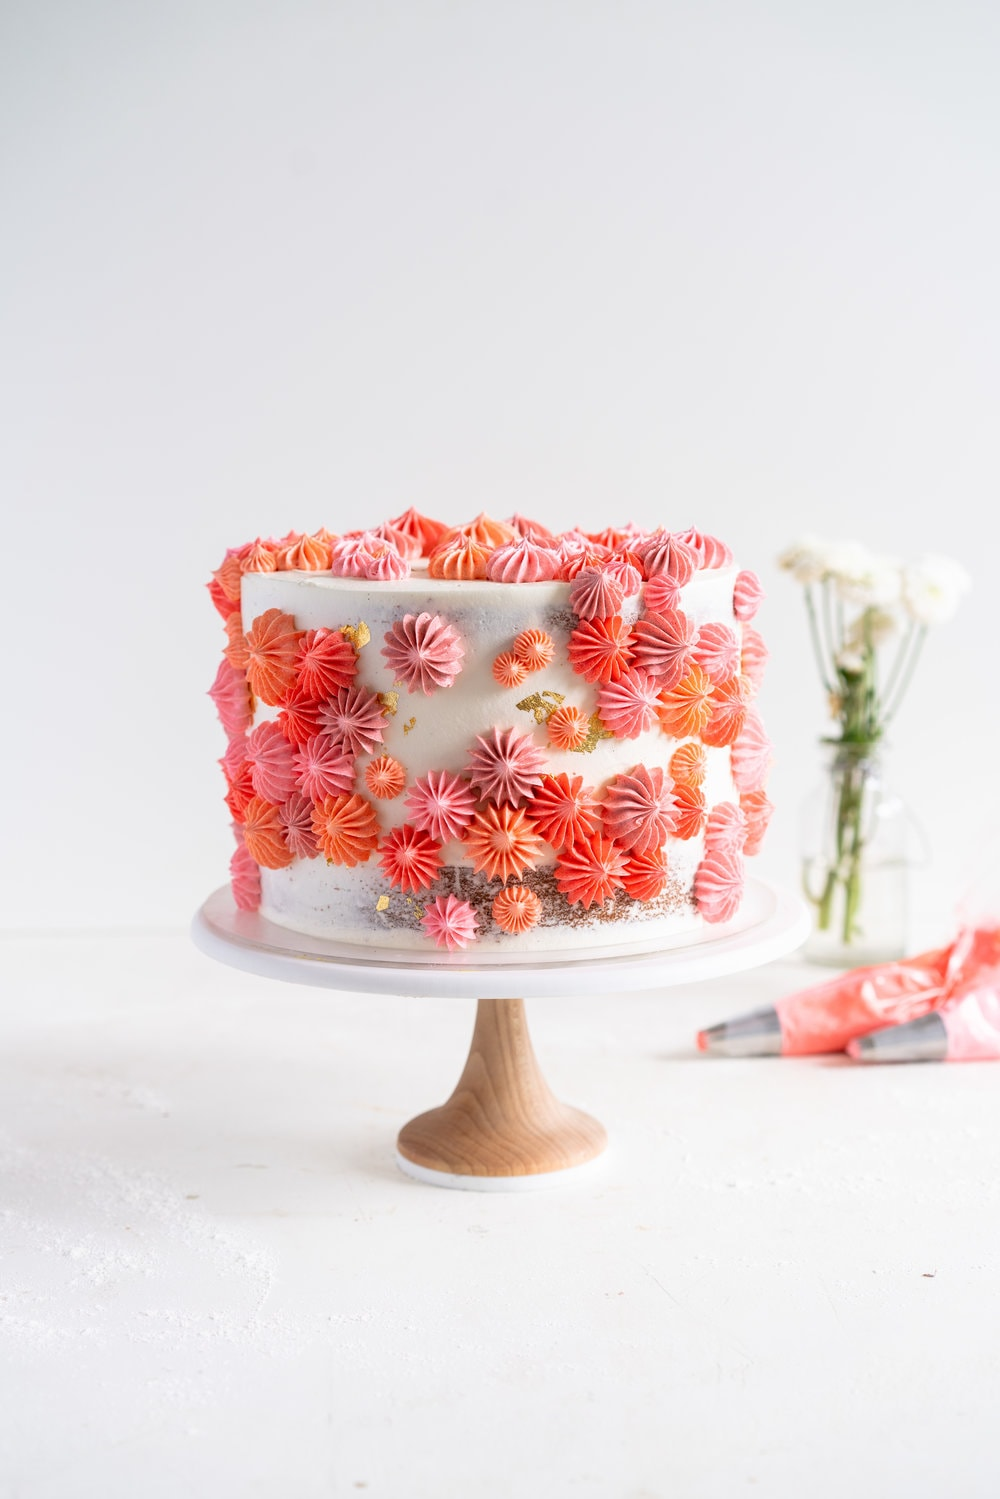 Five layer cakes, two days, and one tiny NYC apartment  - tips and tricks for making a whole bunch of cakes all at once over the course of two days #weddingcake #layercake #deconstructedweddingcake